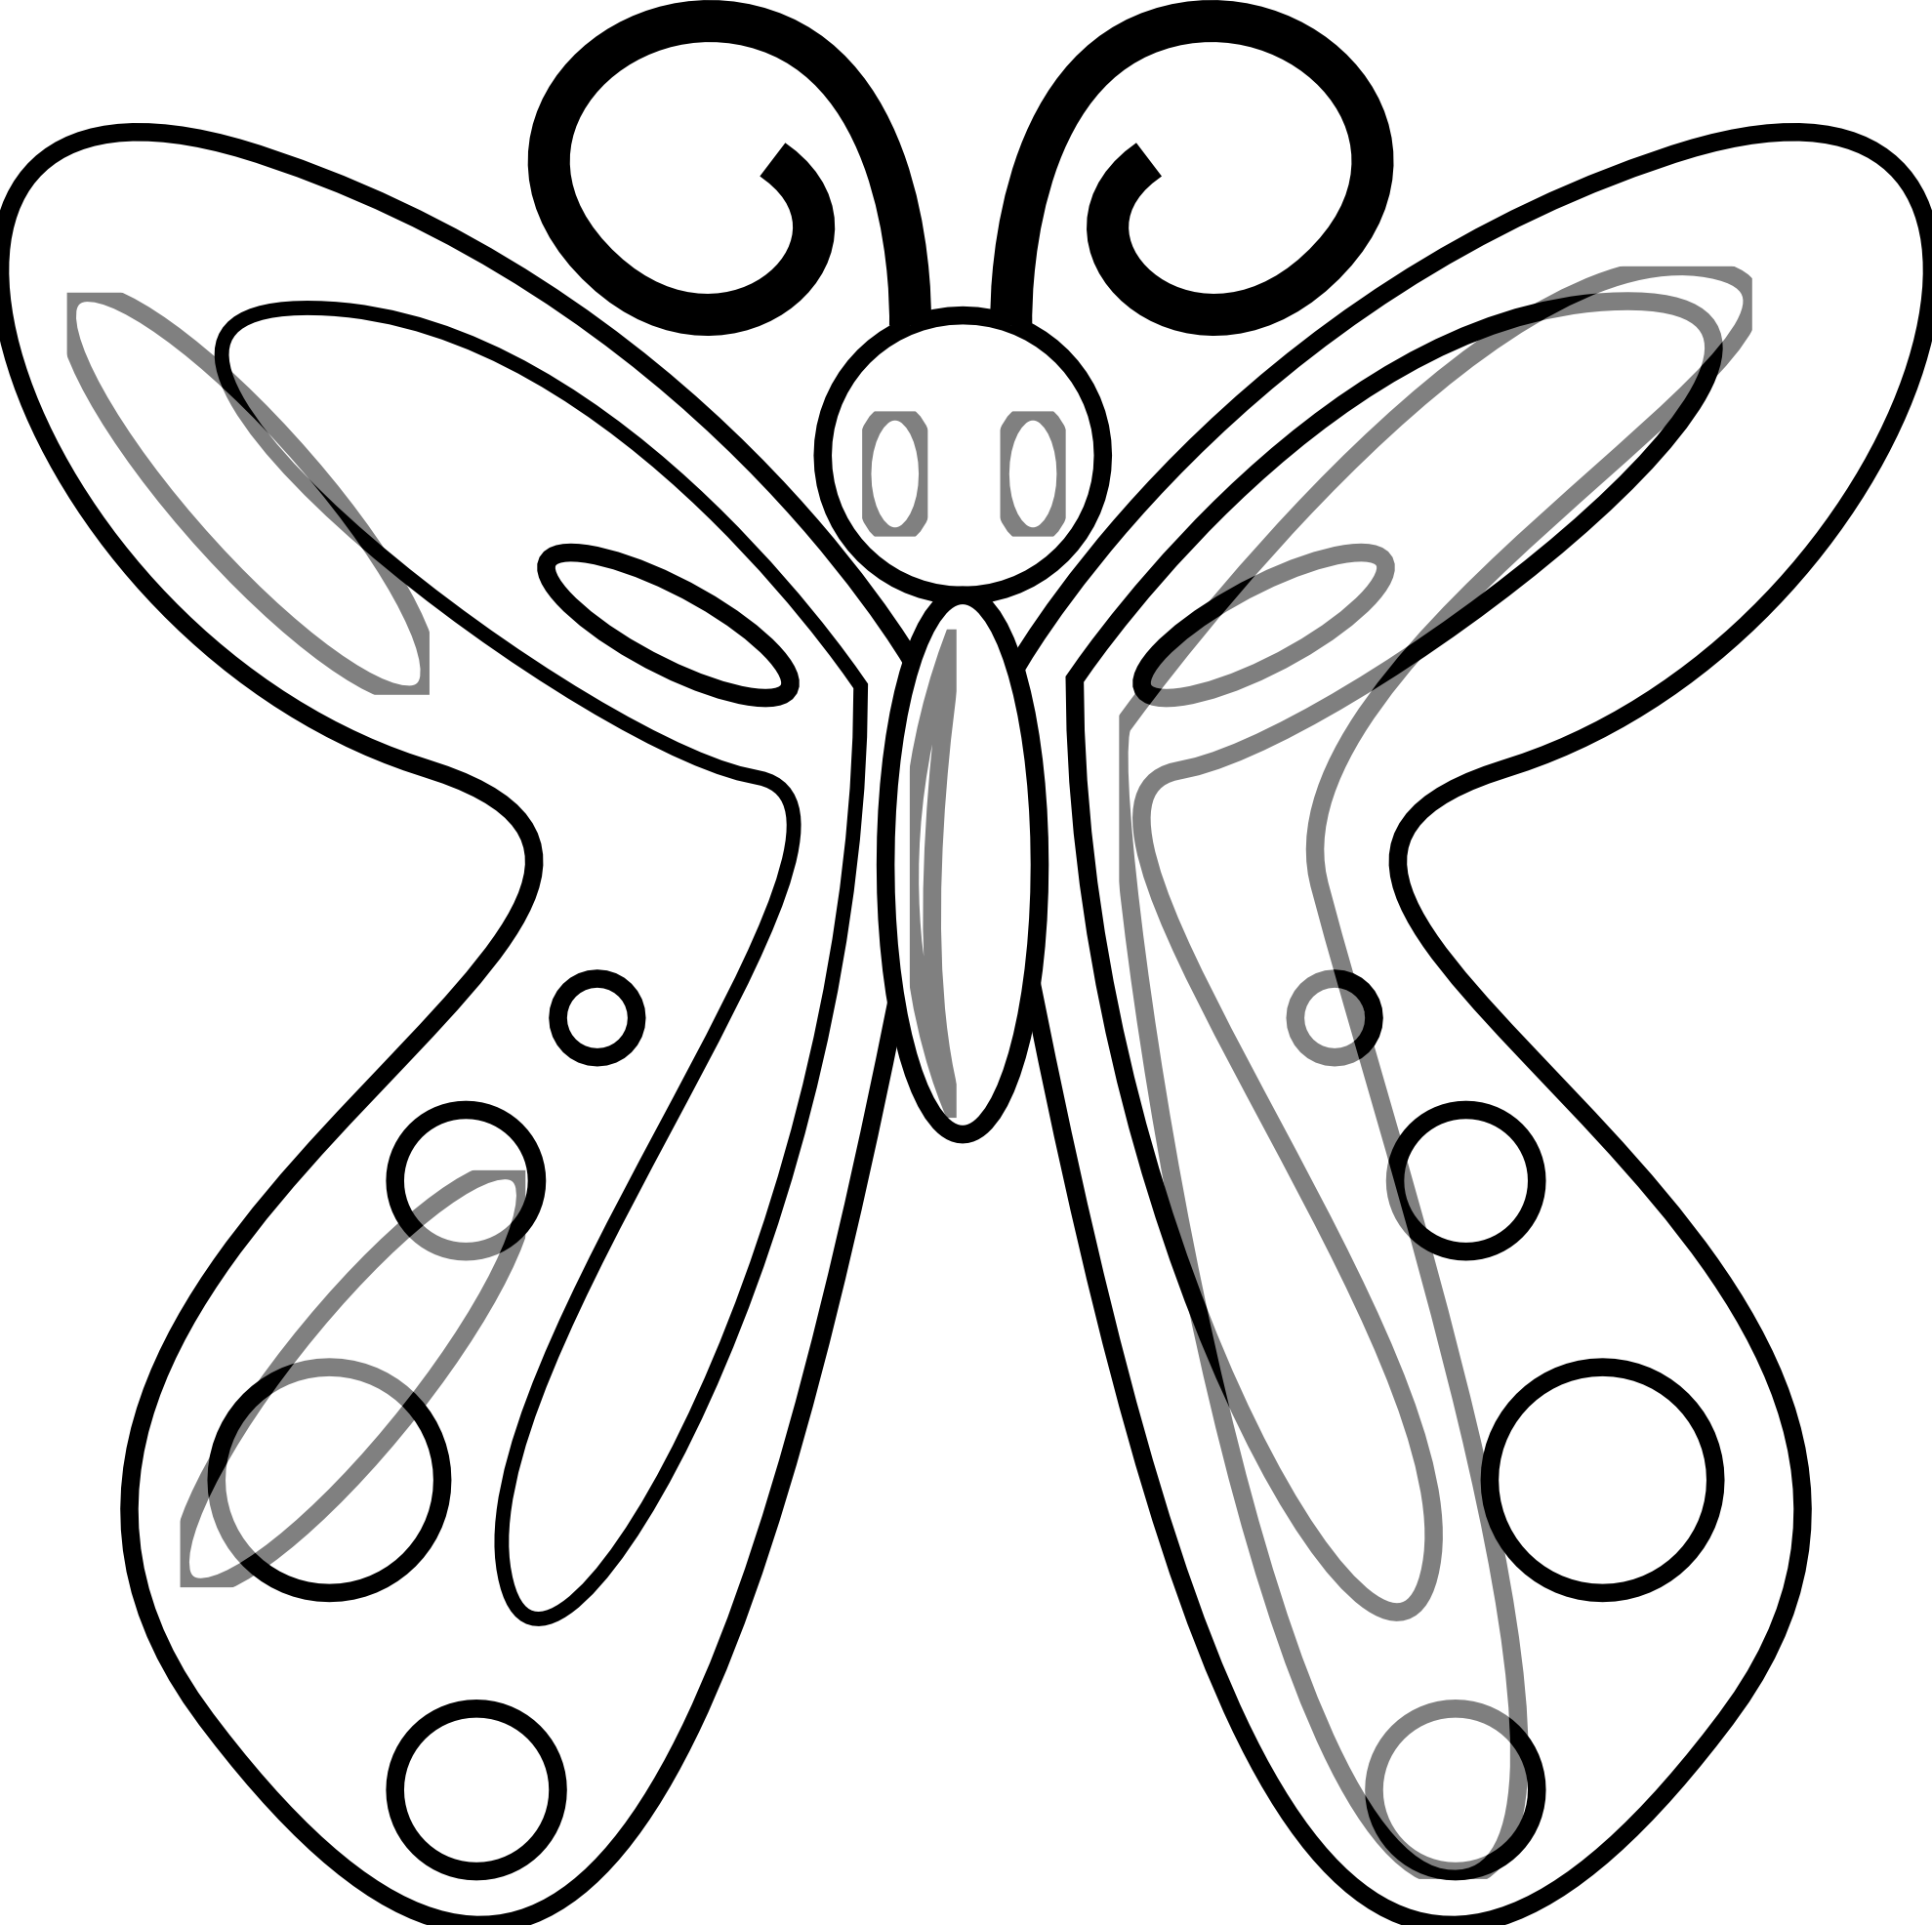 Line Drawing In Computer Graphics : Line drawings of butterflies clipart best